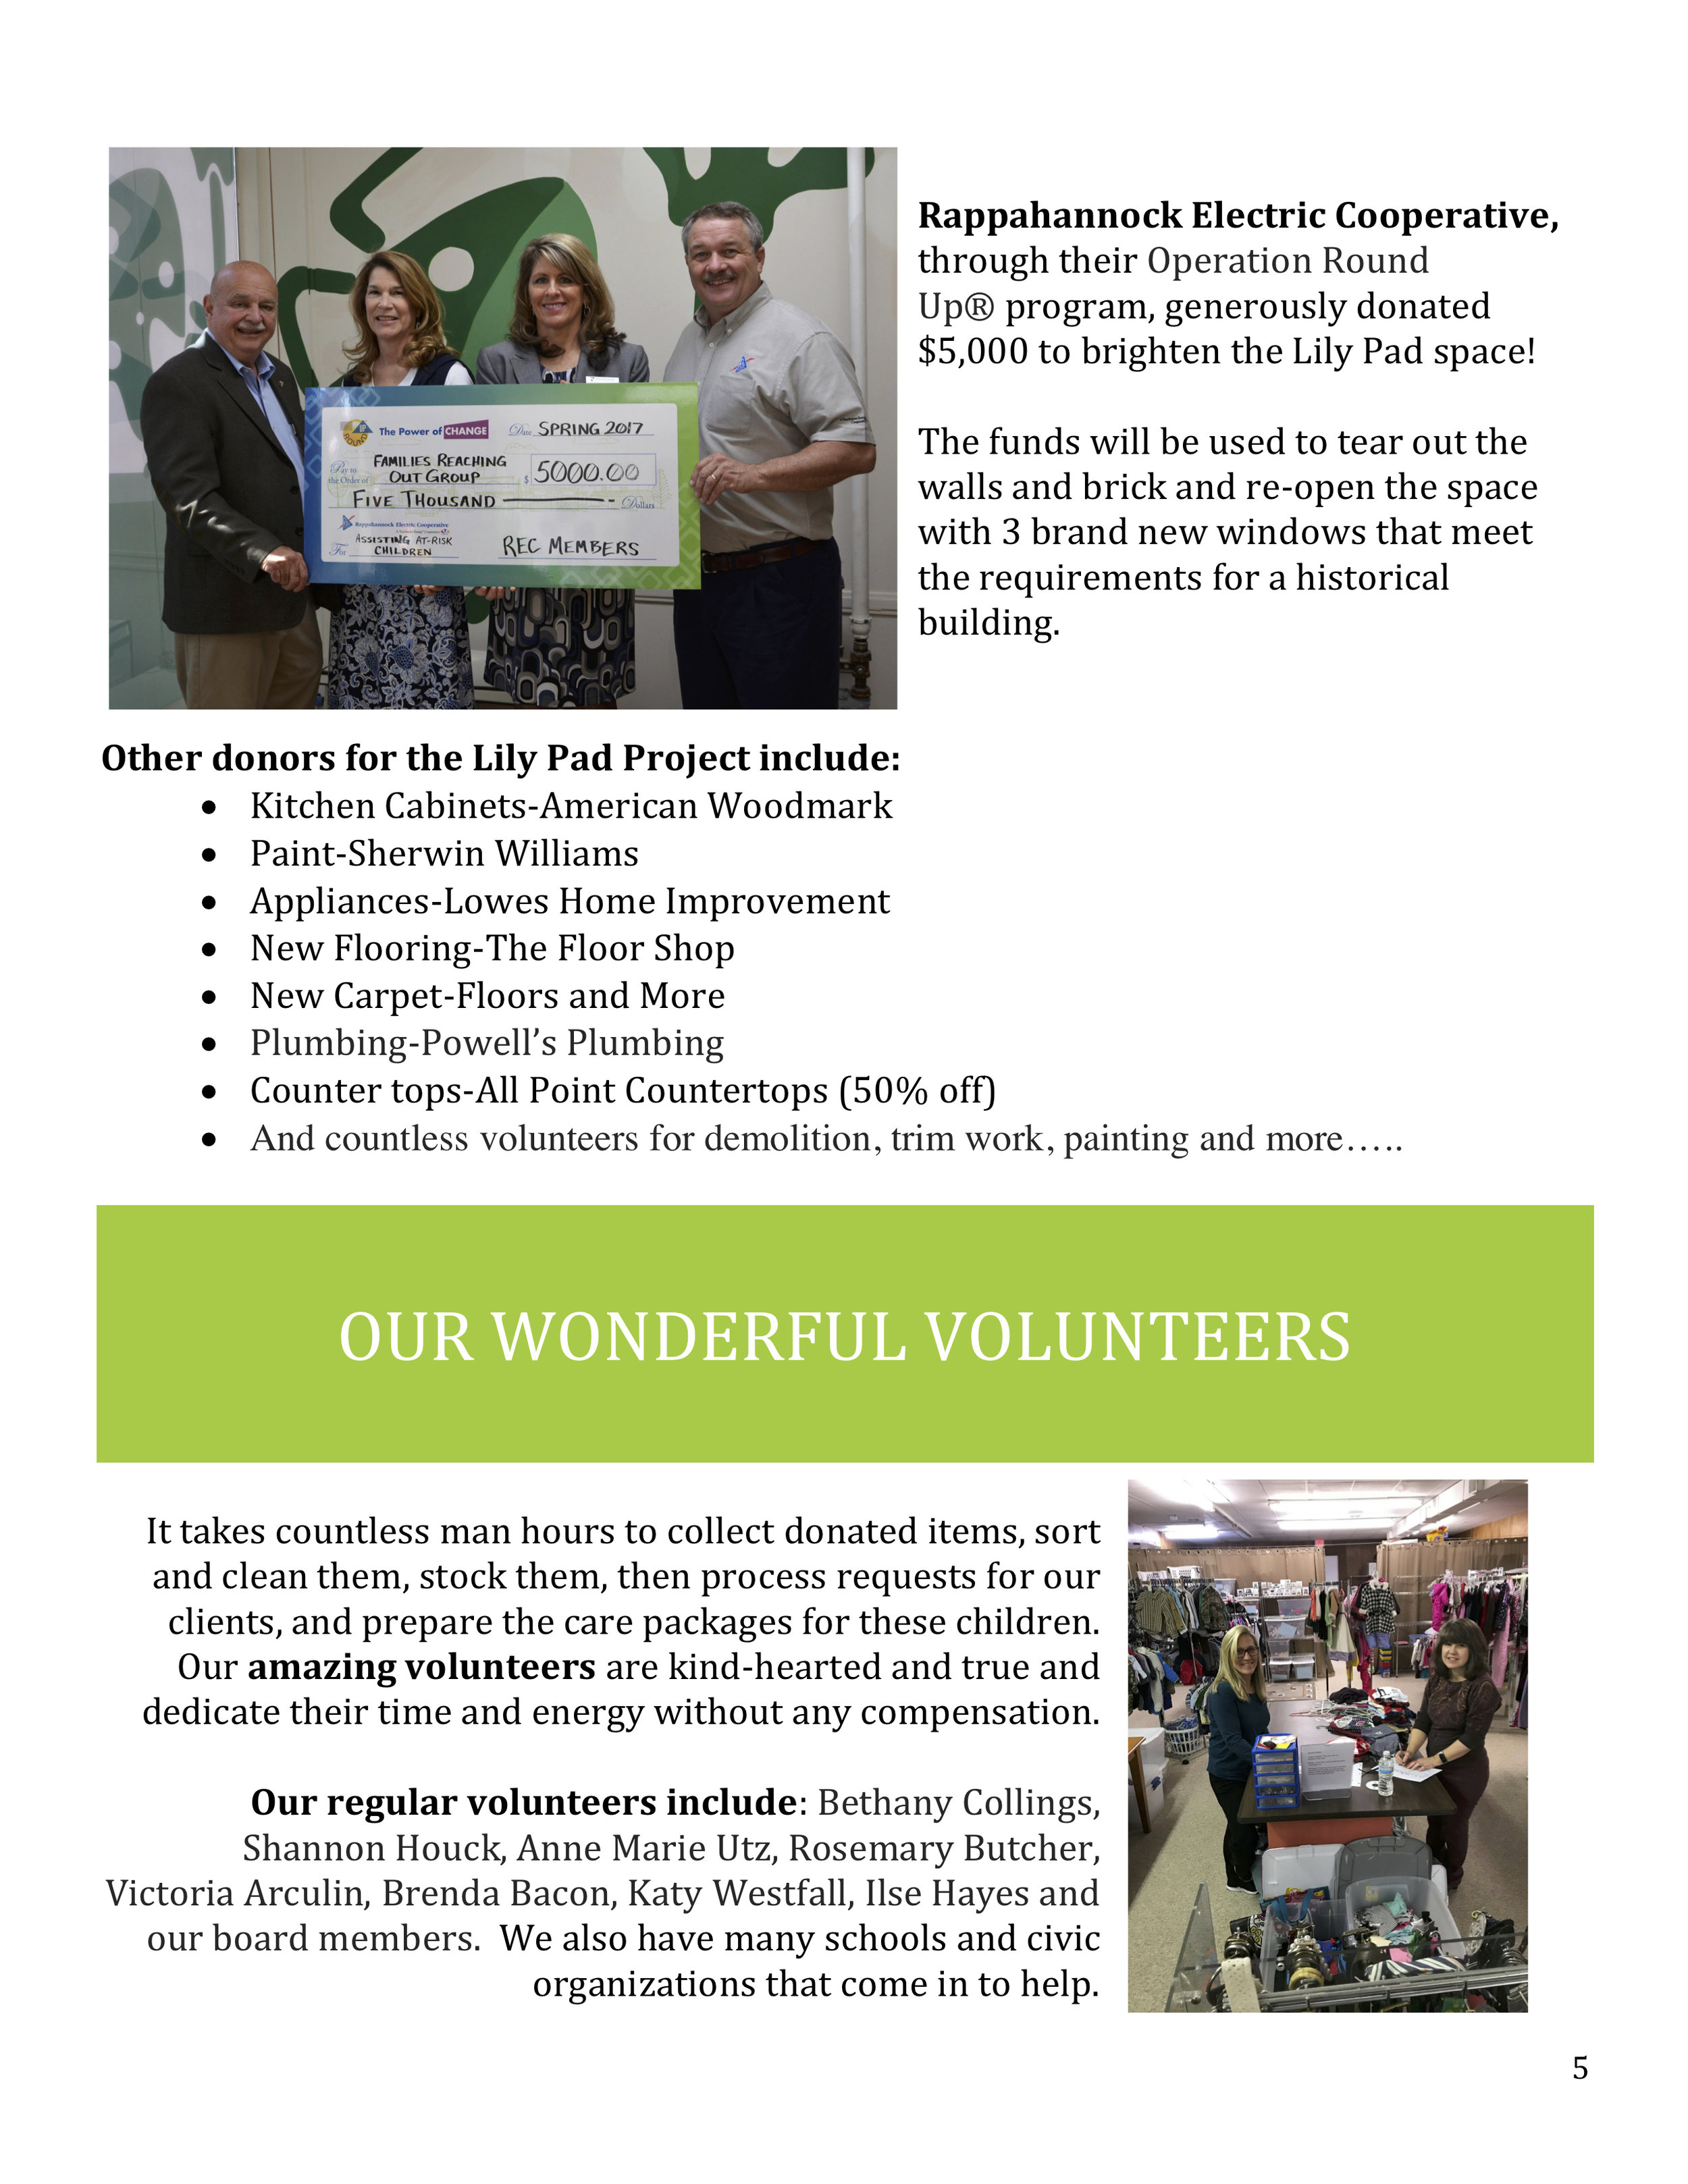 FROG-Our Year in Review-2017 Page 5.jpg